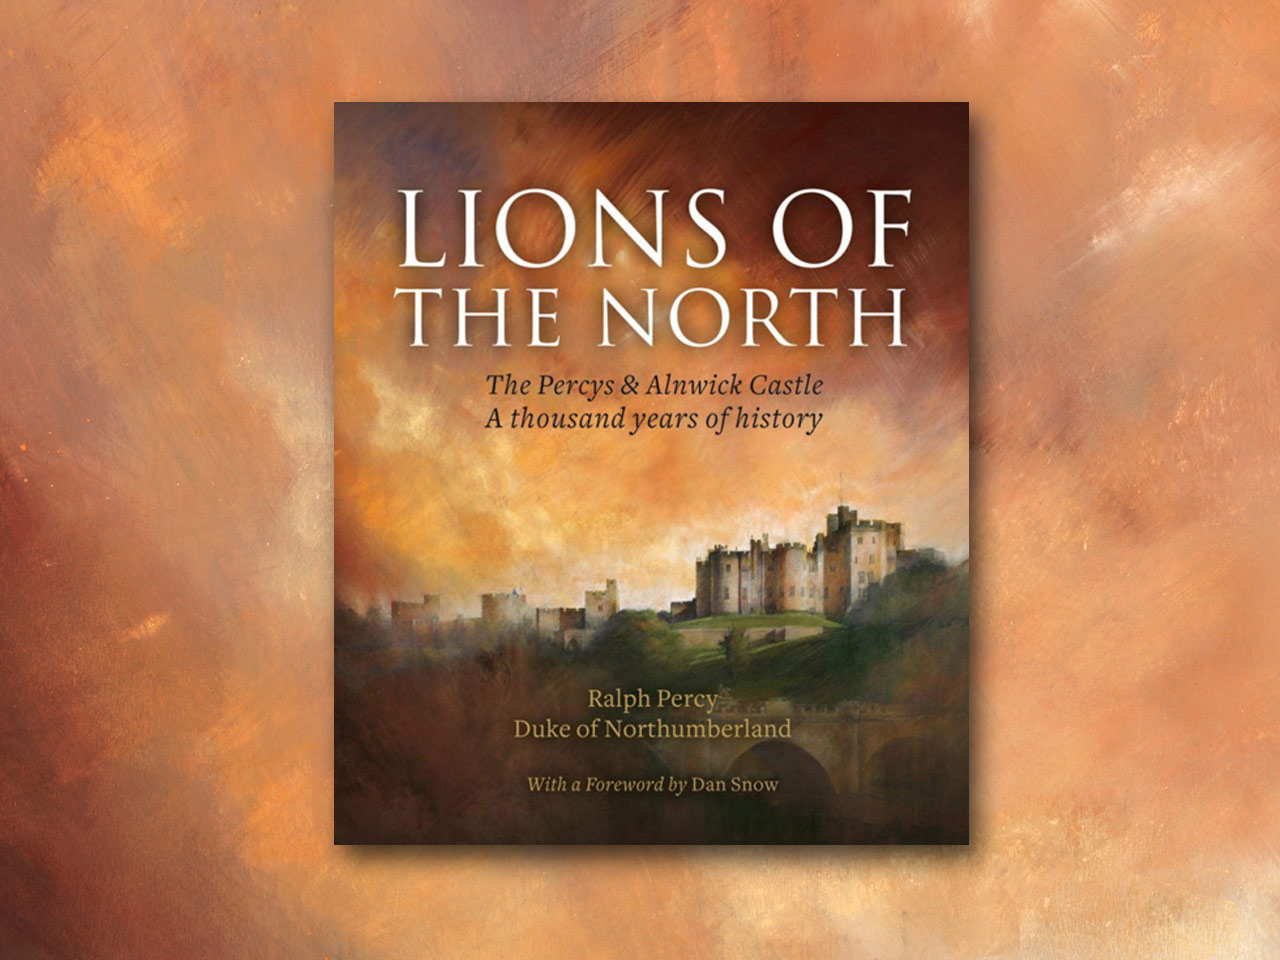 Lions of The North cover image